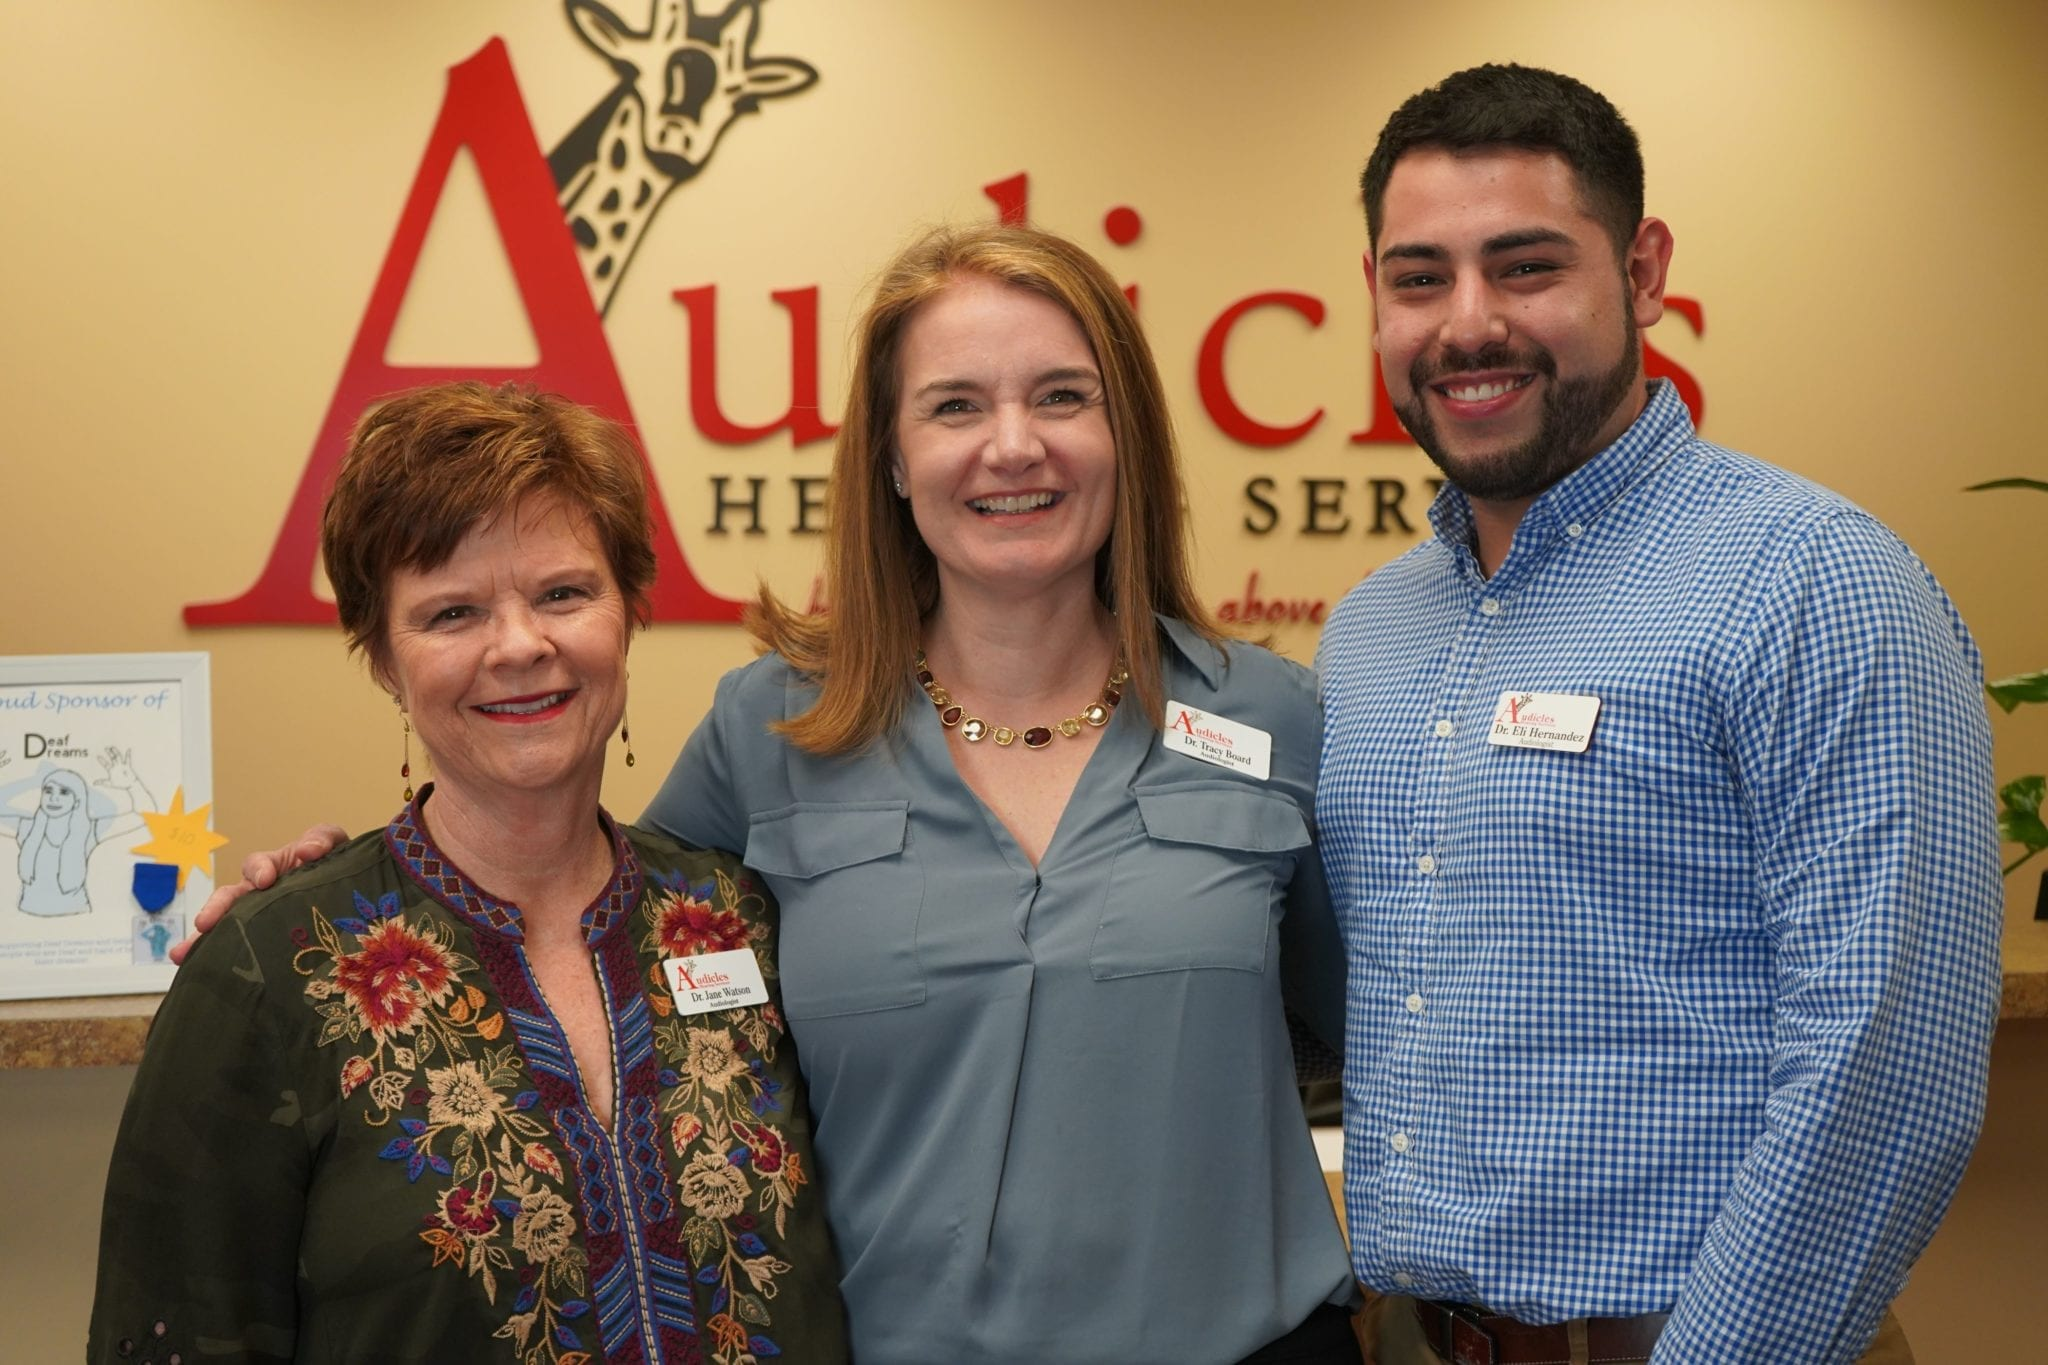 Audiologists at Audicles